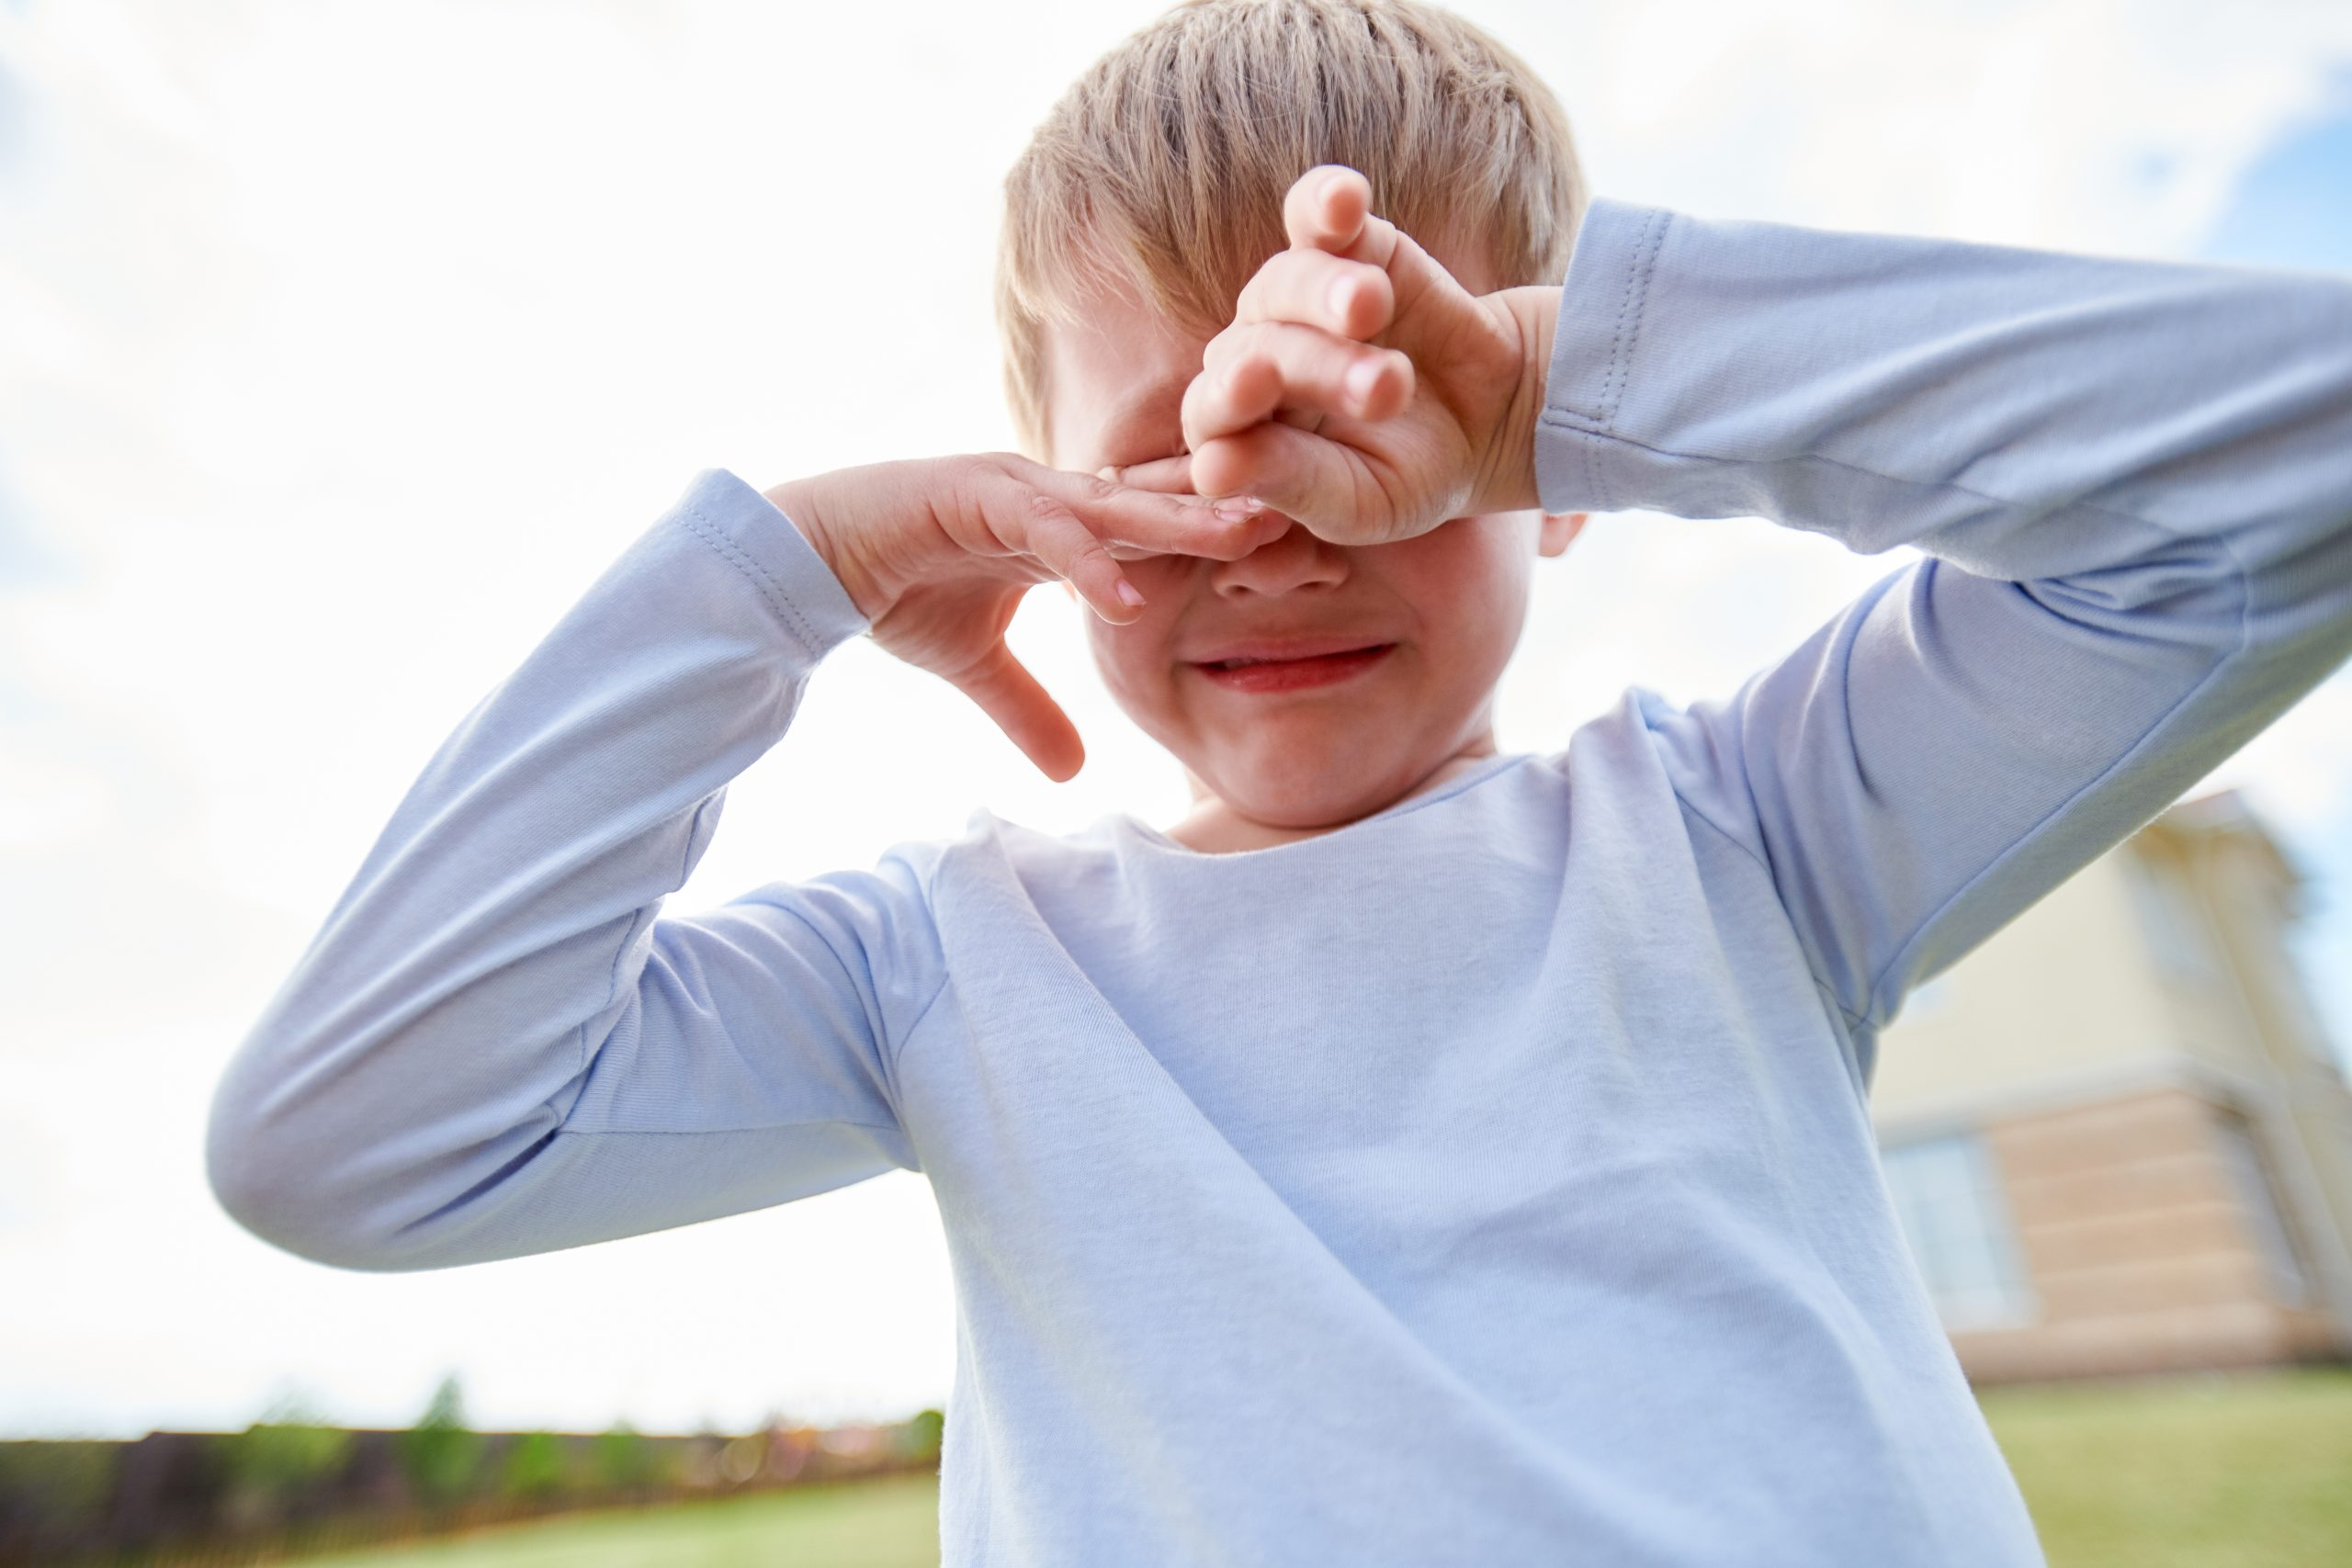 Low angle portrait of sad little boy crying hysterically outdoors, covering eyes with hands